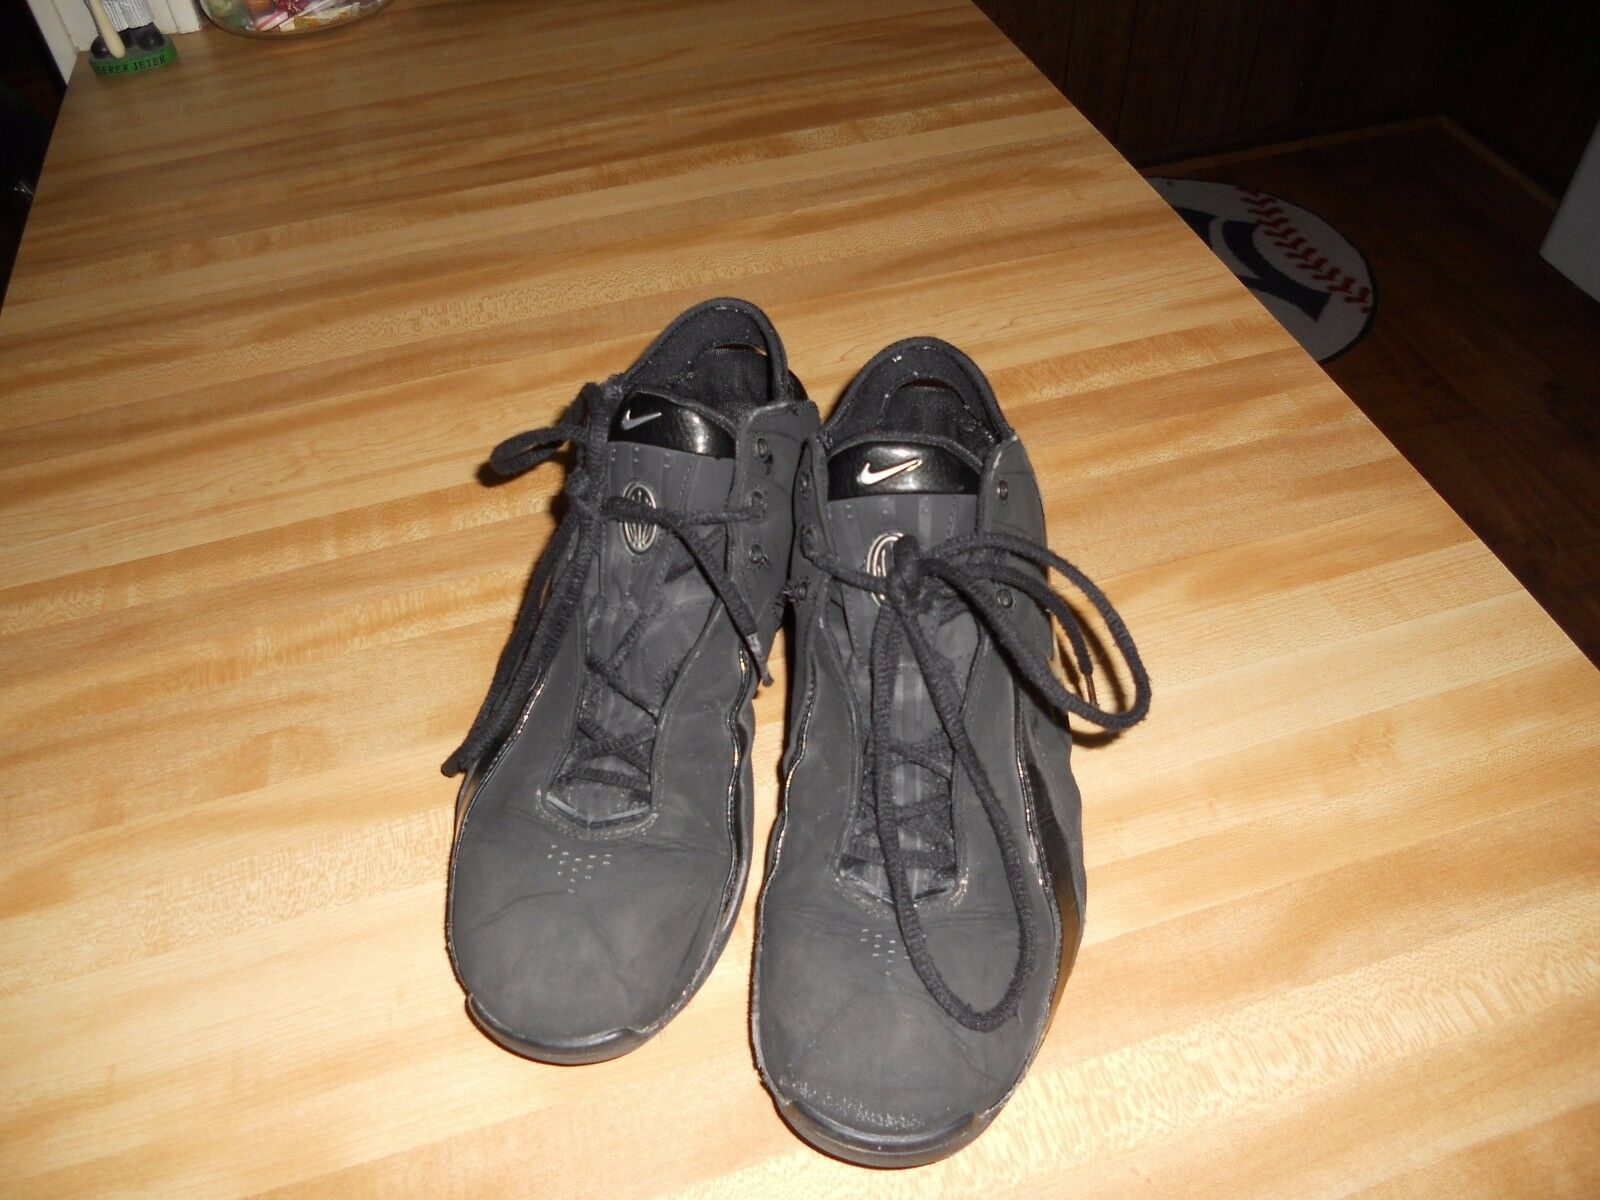 The most popular shoes for men and women NIKE FULL LENGTH AIR SNEAKER BLACK SIZE 10.5 VERY NICE